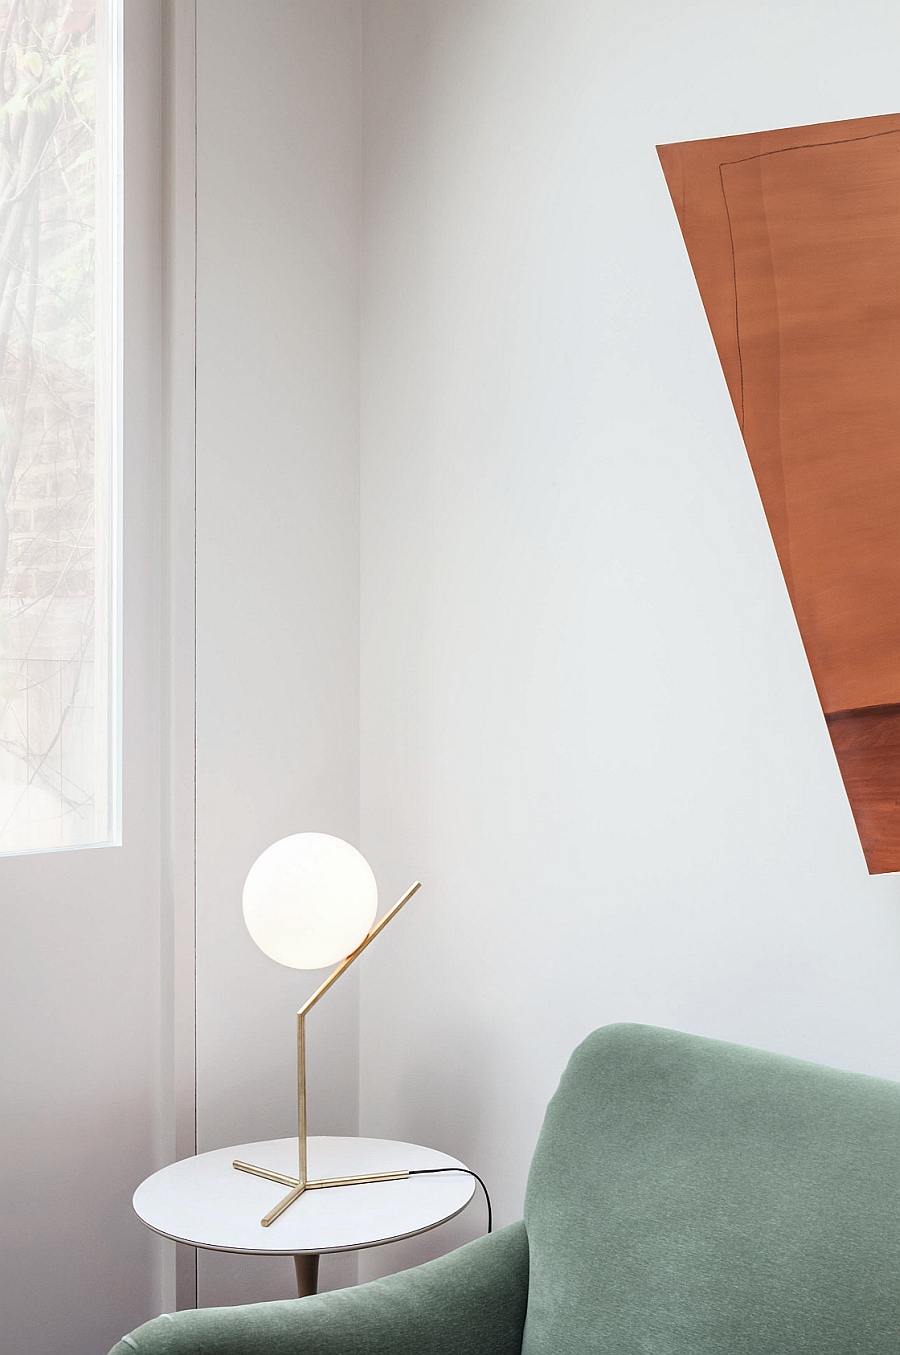 Ergonomic and aesthetic table lamp from FLOS